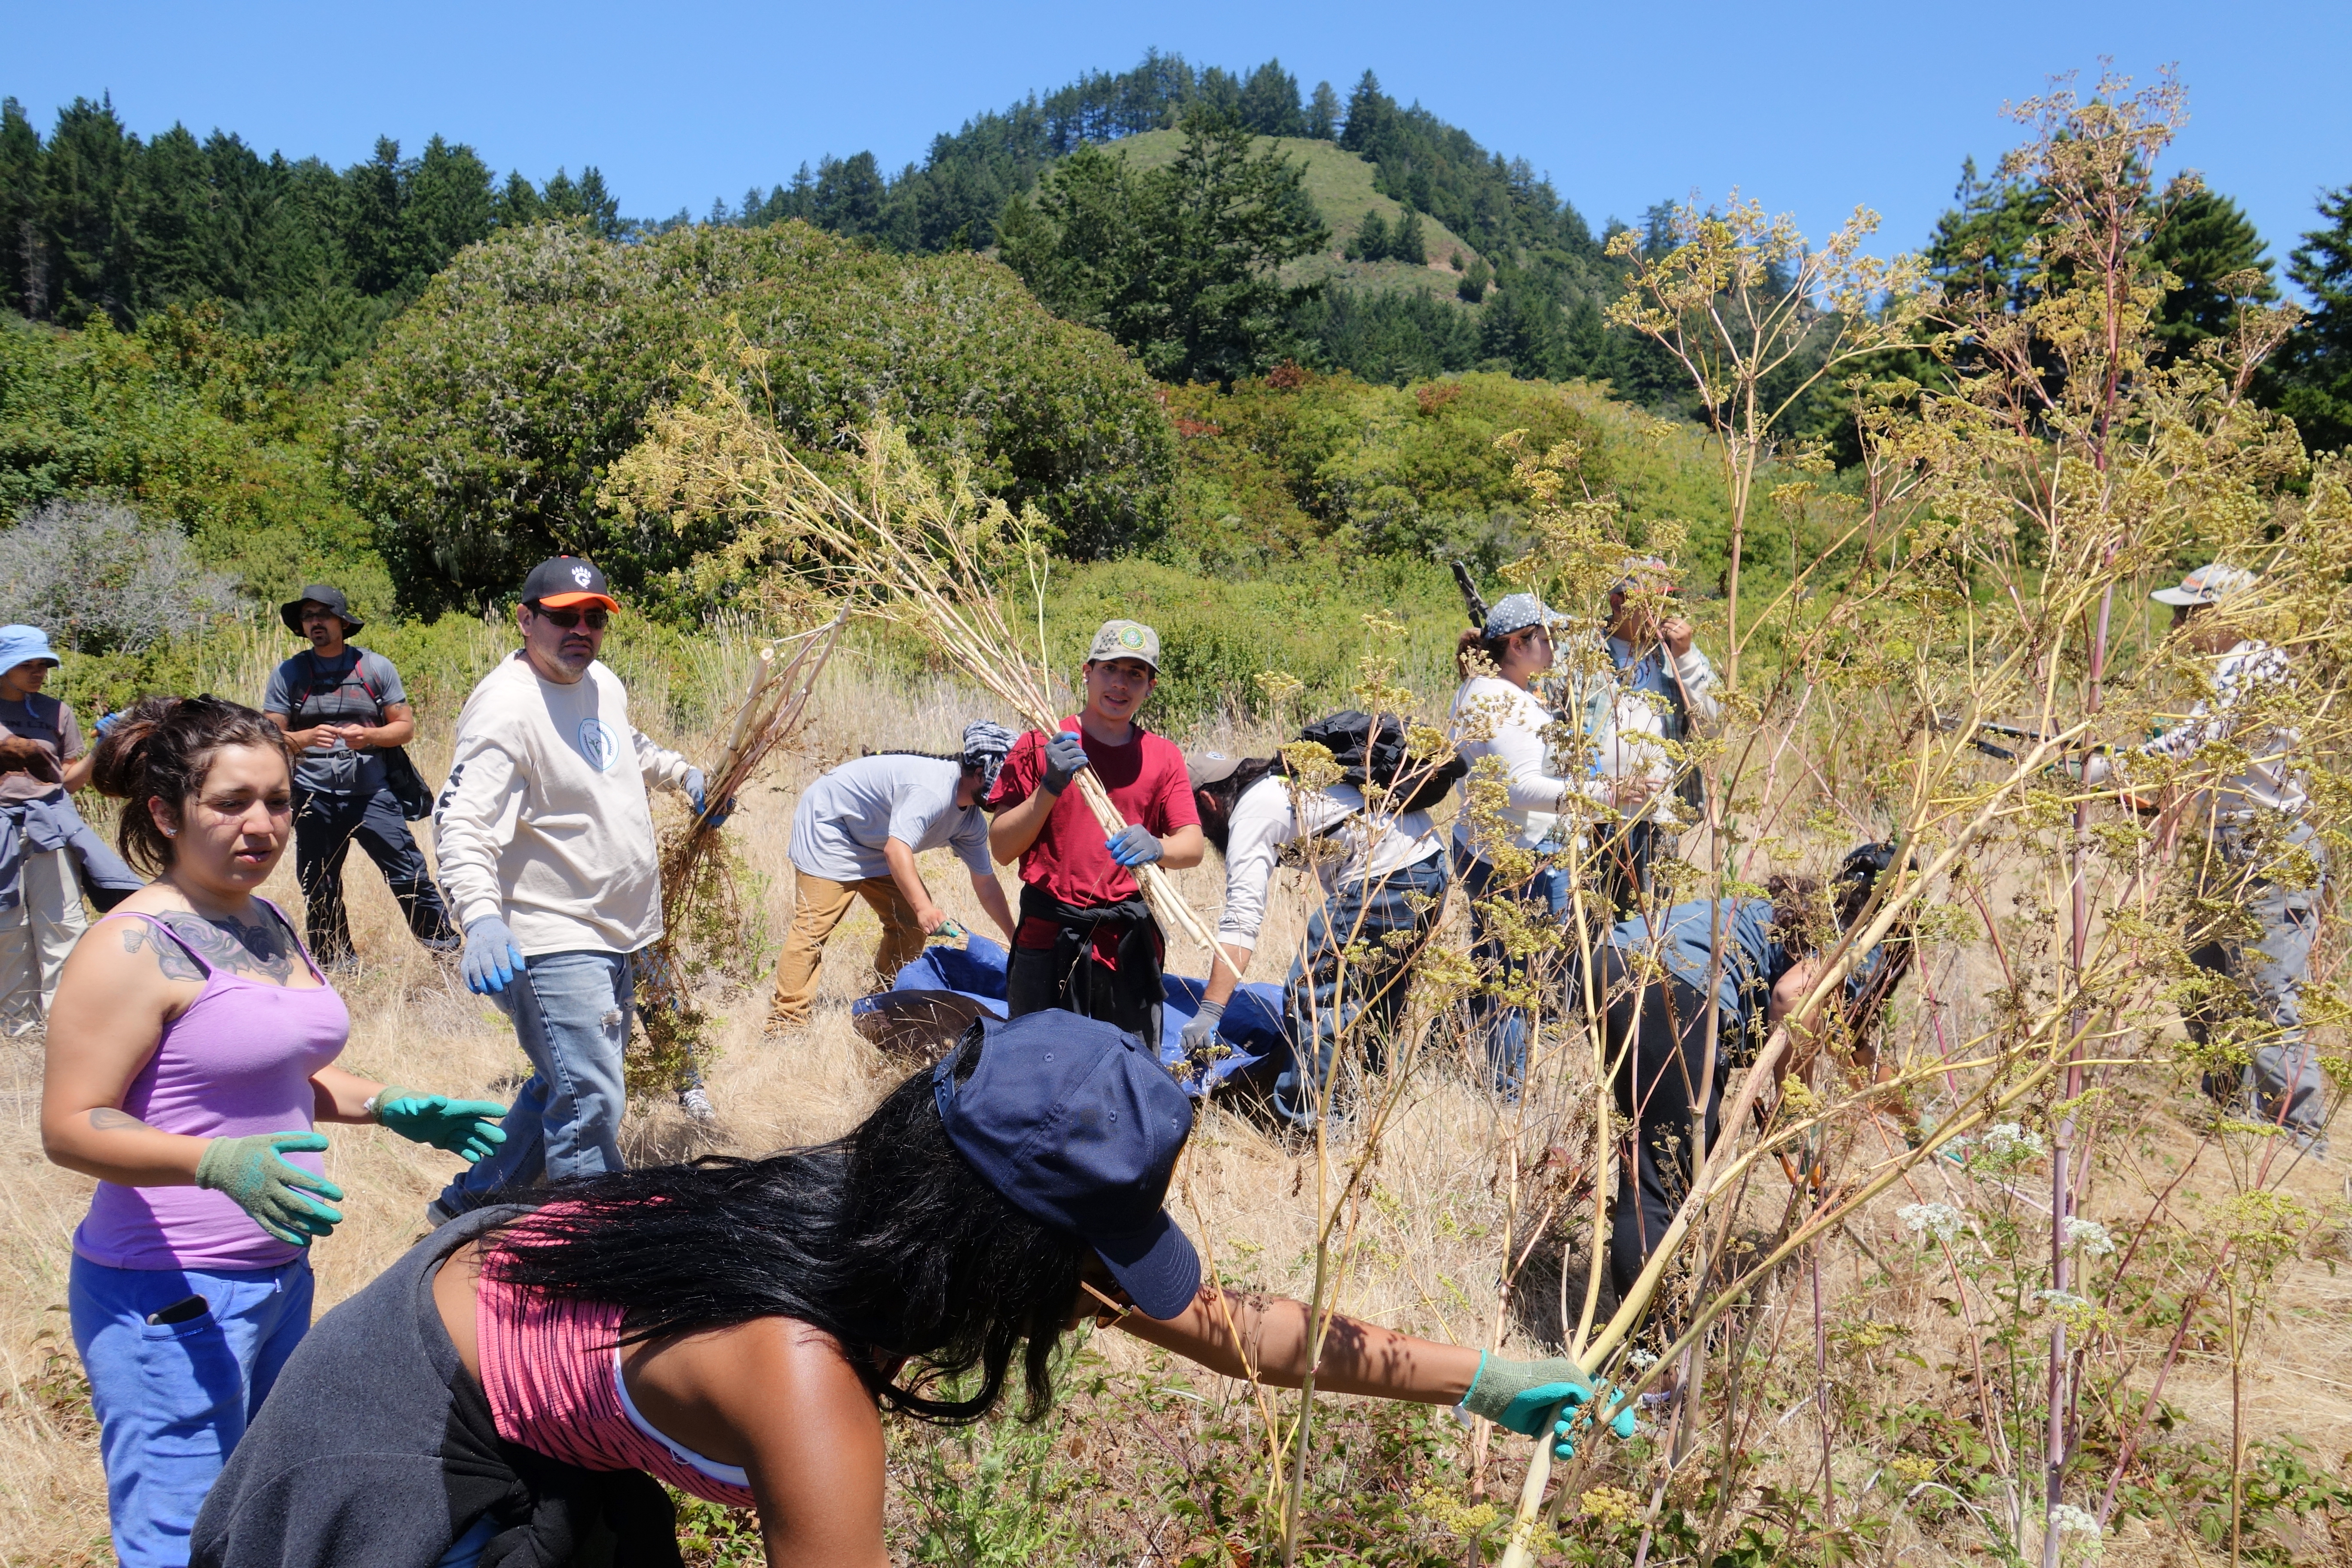 Getting hands-on stewardship experience removing invasive plants. Photo courtesy Cat Wilder.